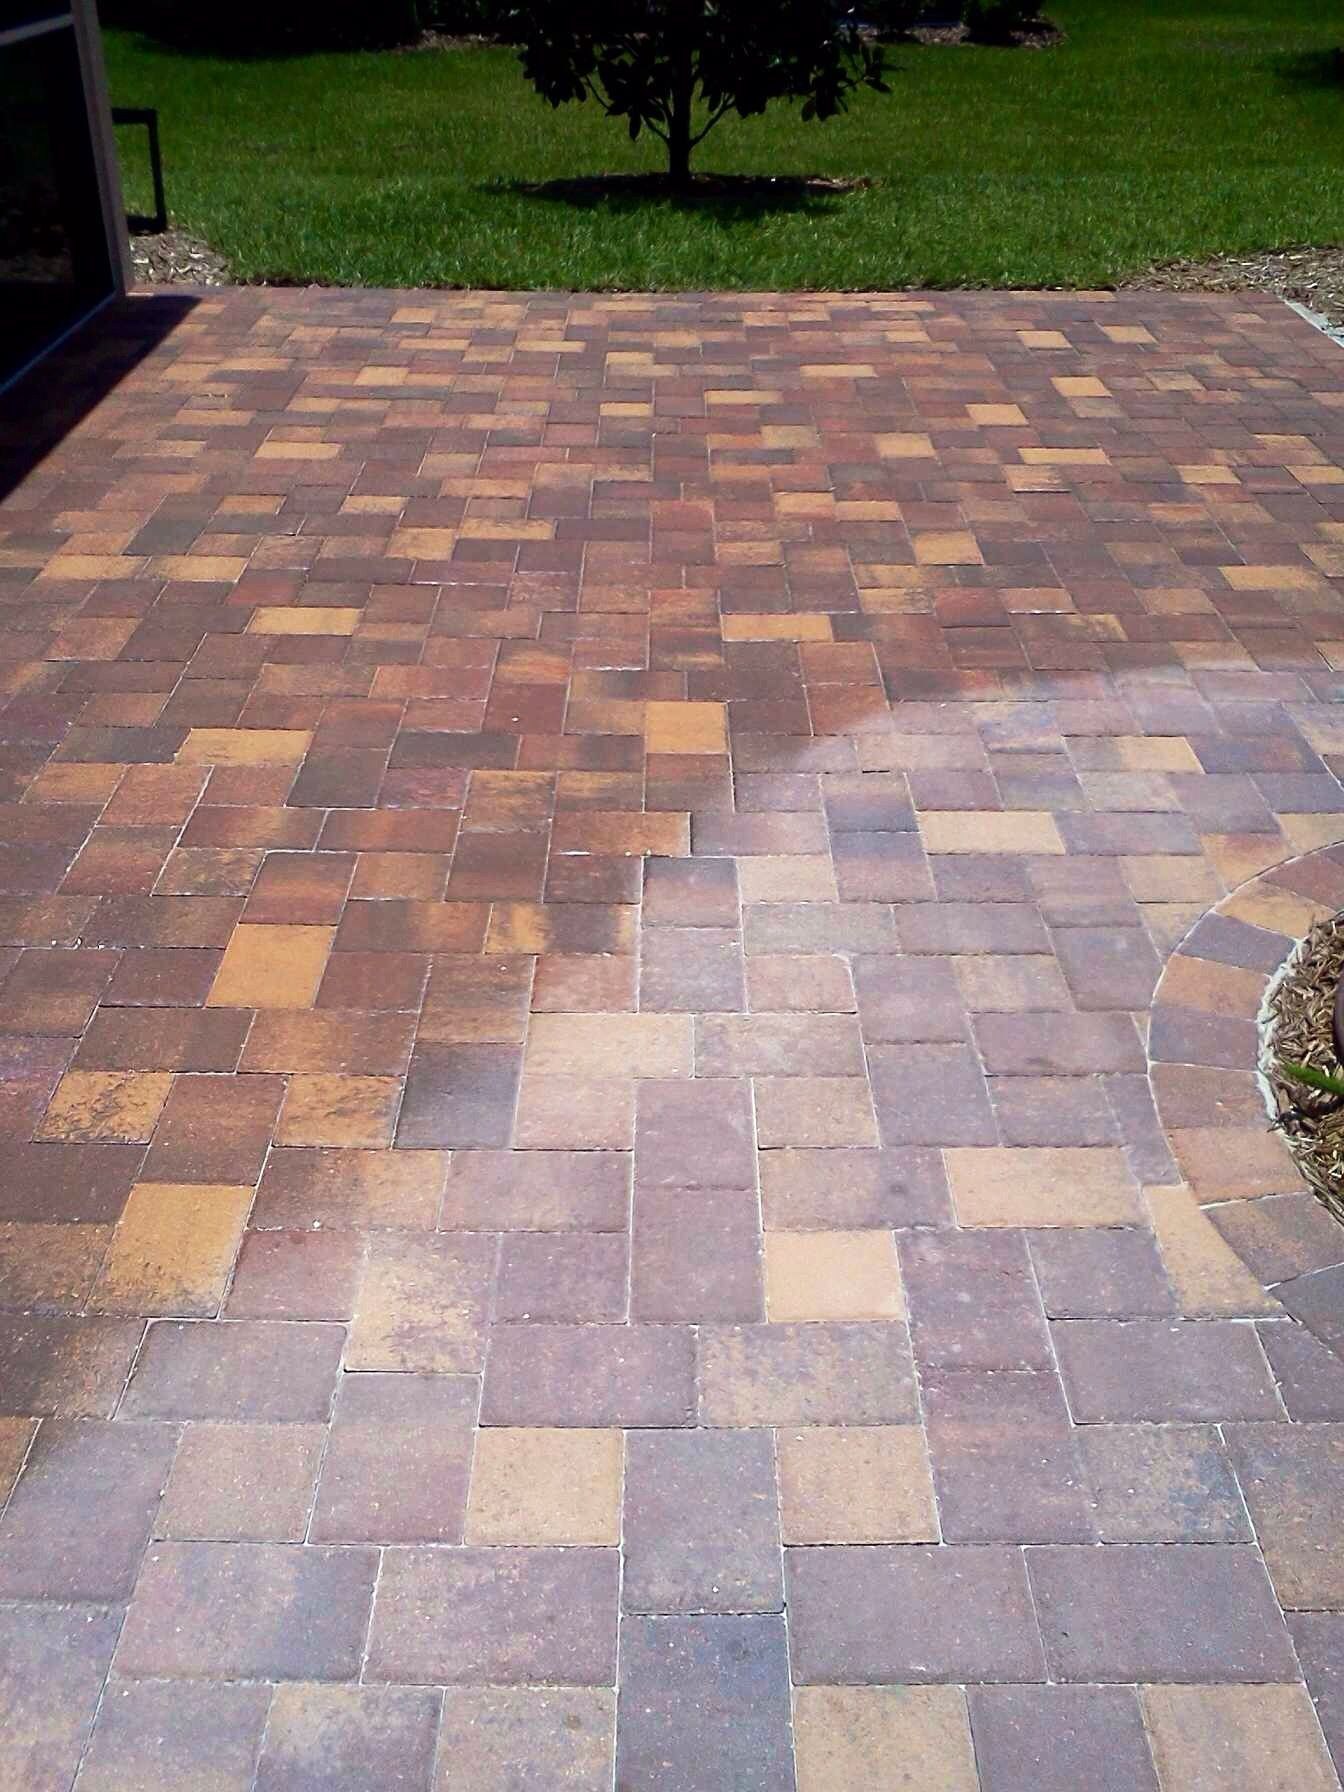 How To Clean And Seal Brick Pavers Walesfootprint Org